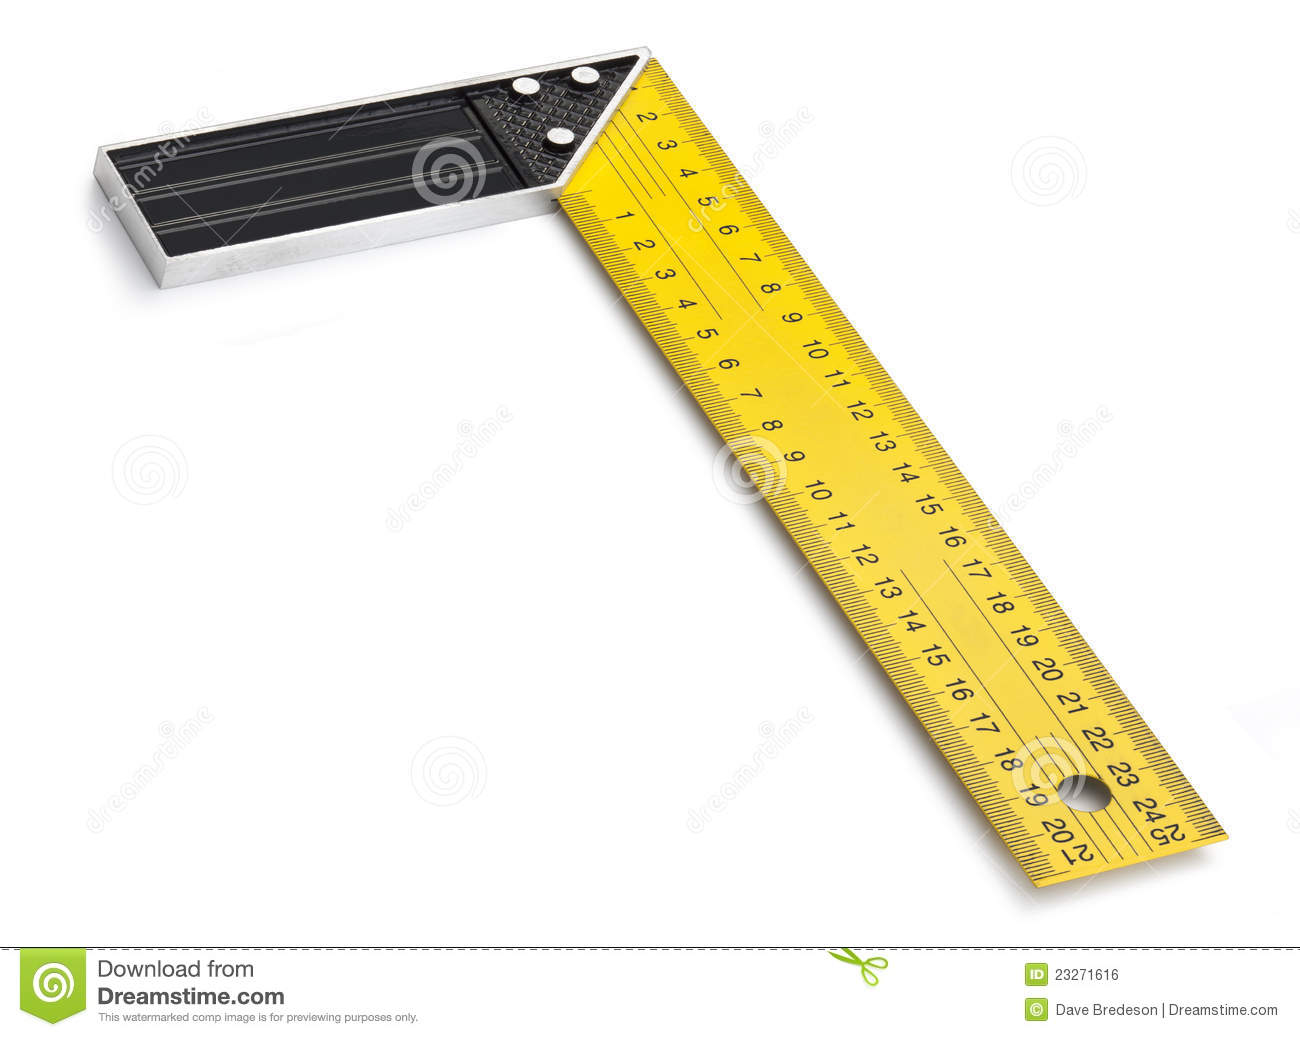 Right Angle Tool : Right angle tool stock photo image of yellow degrees